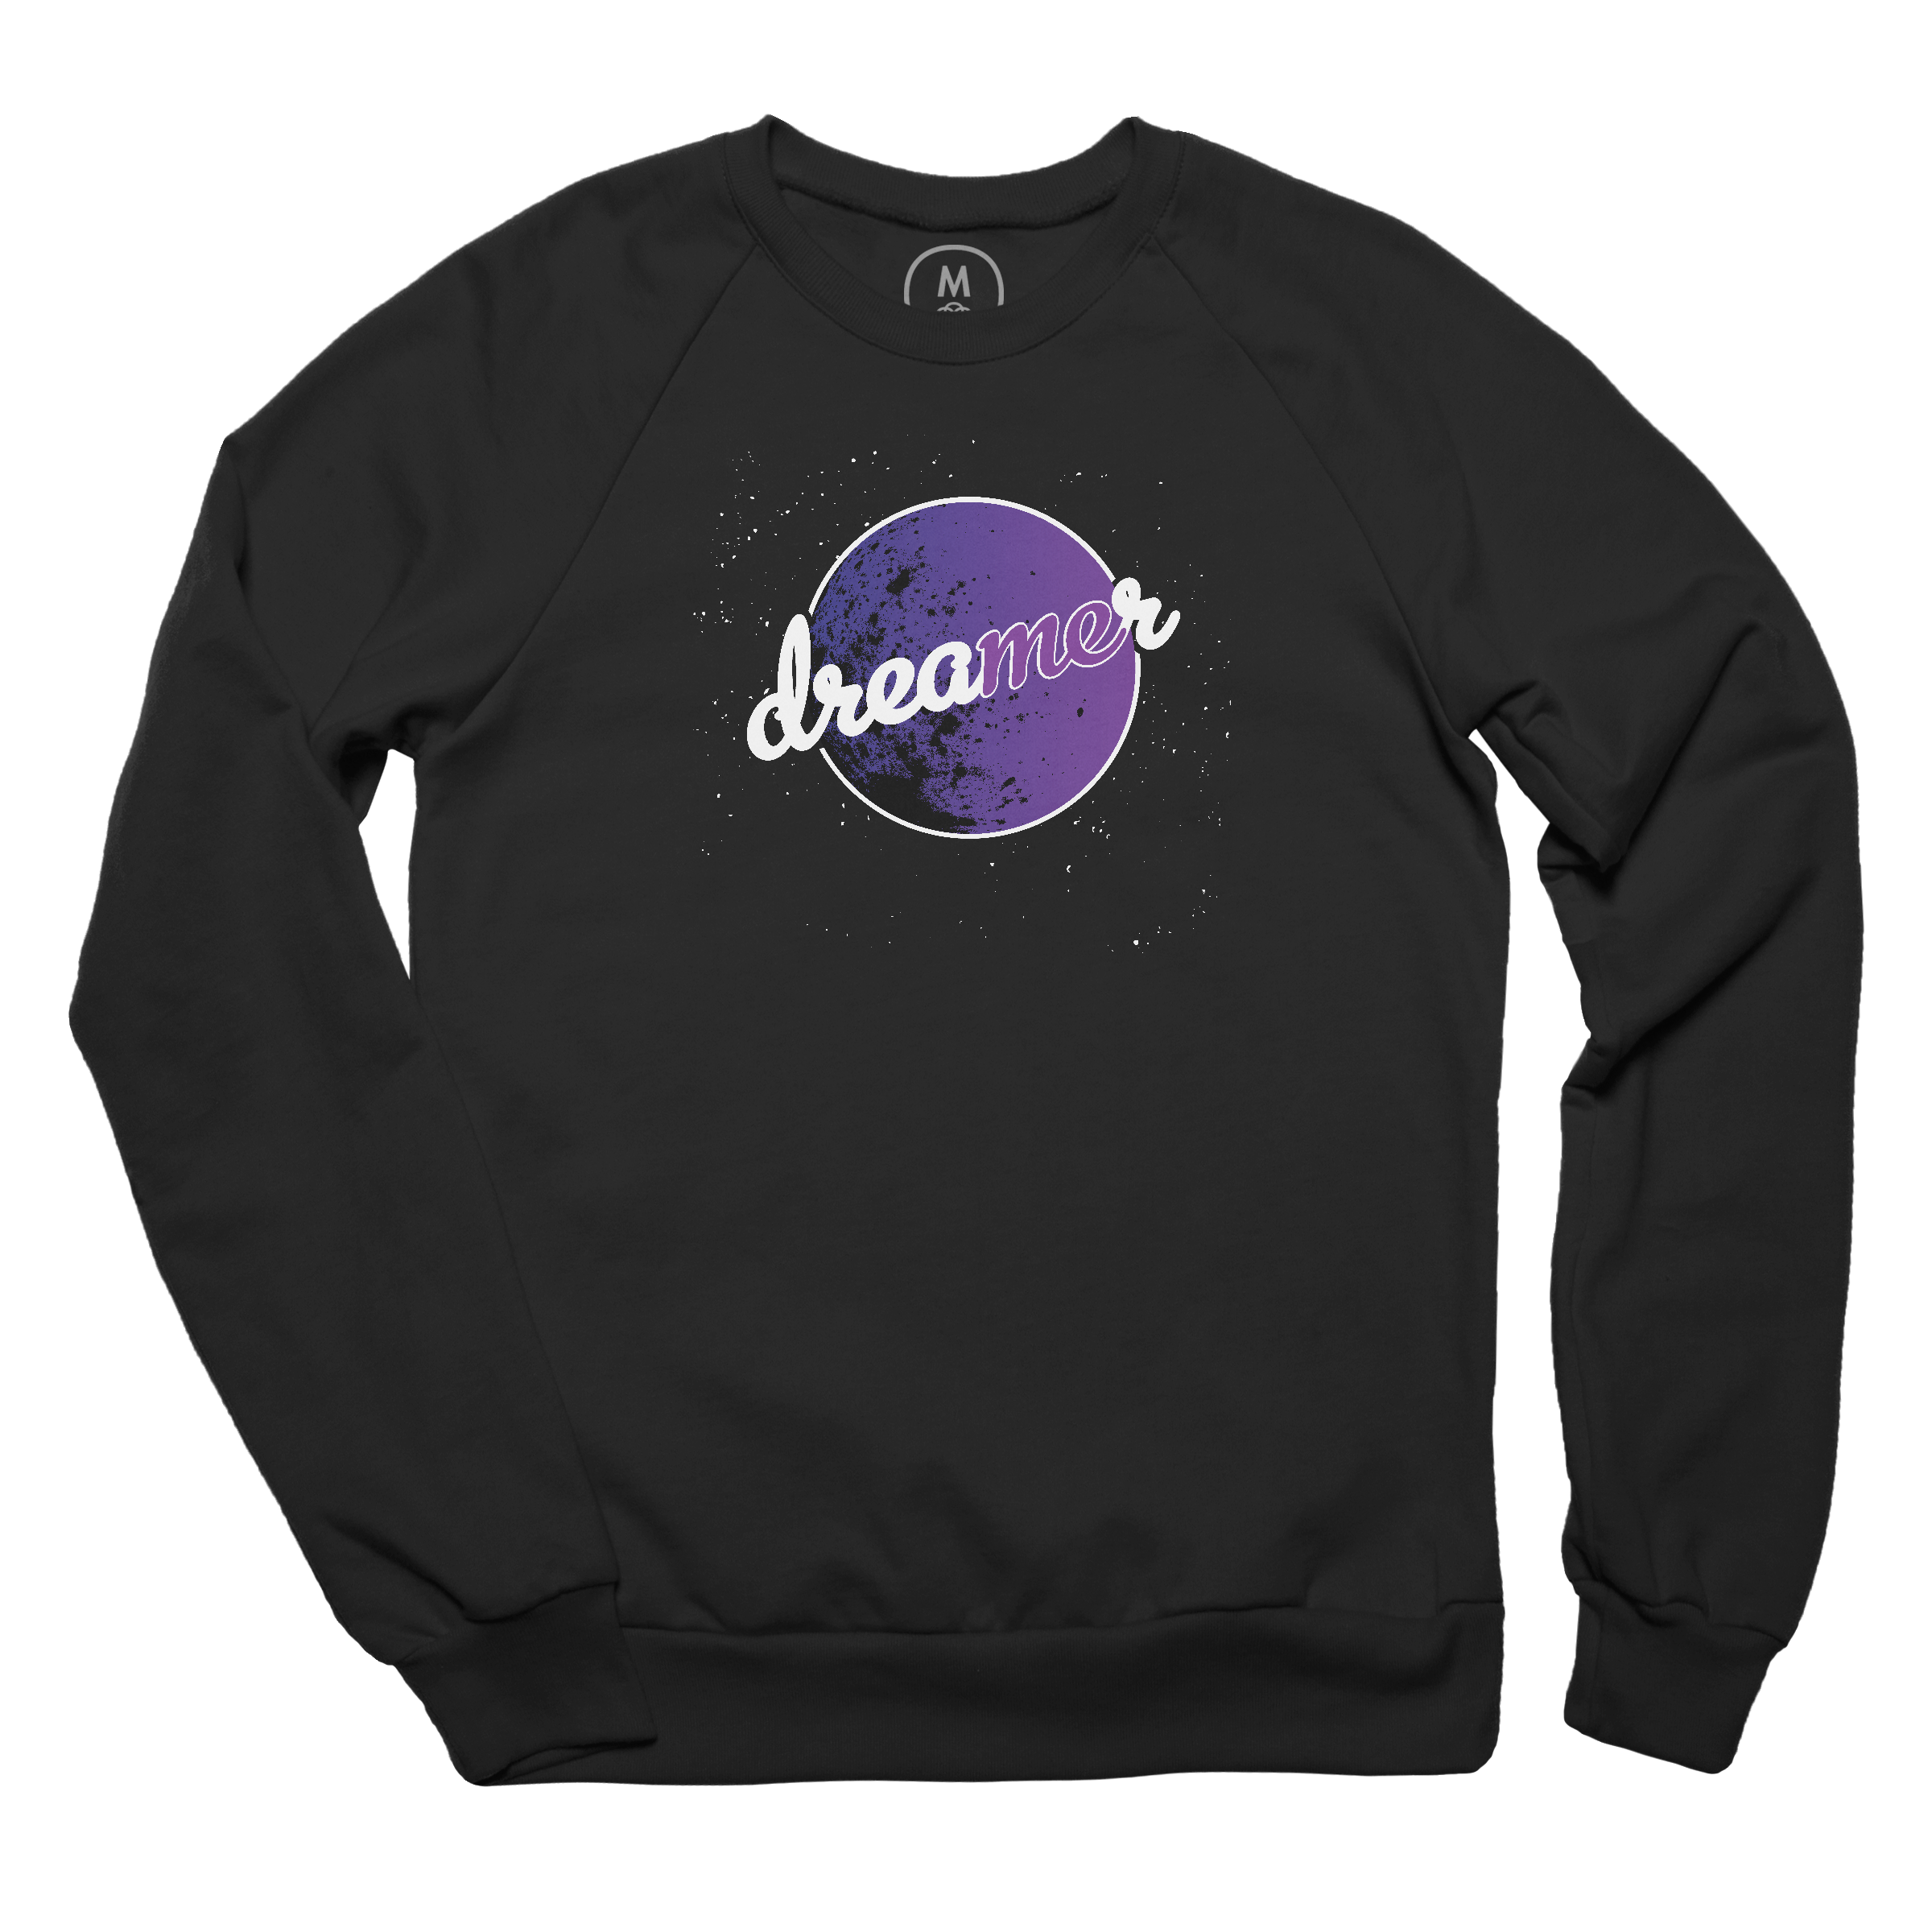 The Dreamer in Me Pullover Crewneck